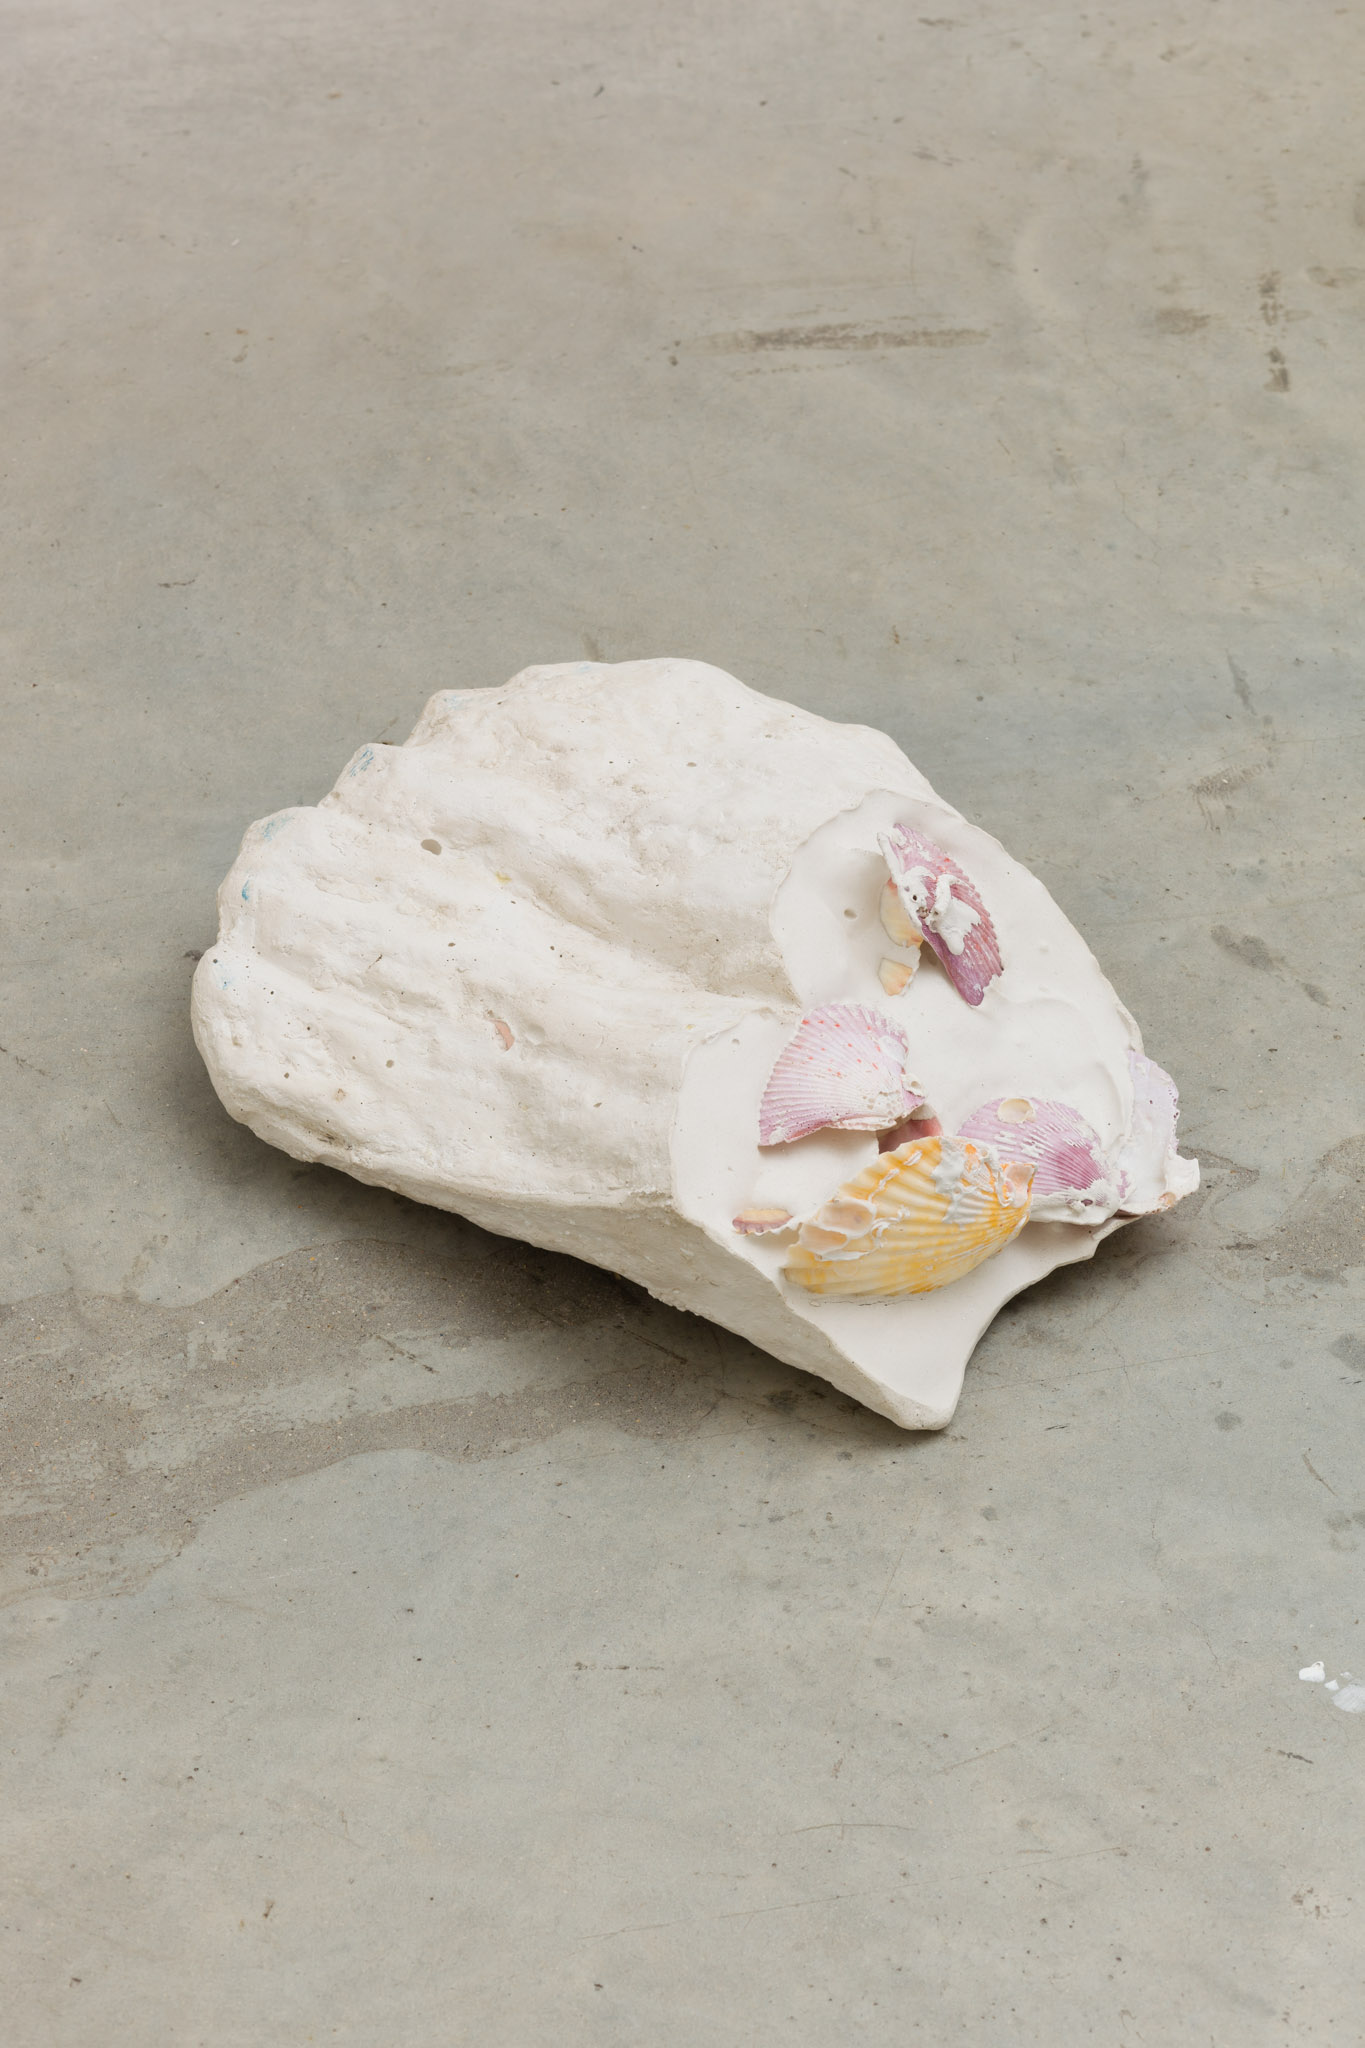 Anna Zacharoff, Diver (foot), 2014, shells, plaster, 31 x 10 x 26 cm, 12 1/4 x 4 x 10 1/4 ins. Thumb of the Diver , Anna Zacharoff presented by Neue Alte Brücke